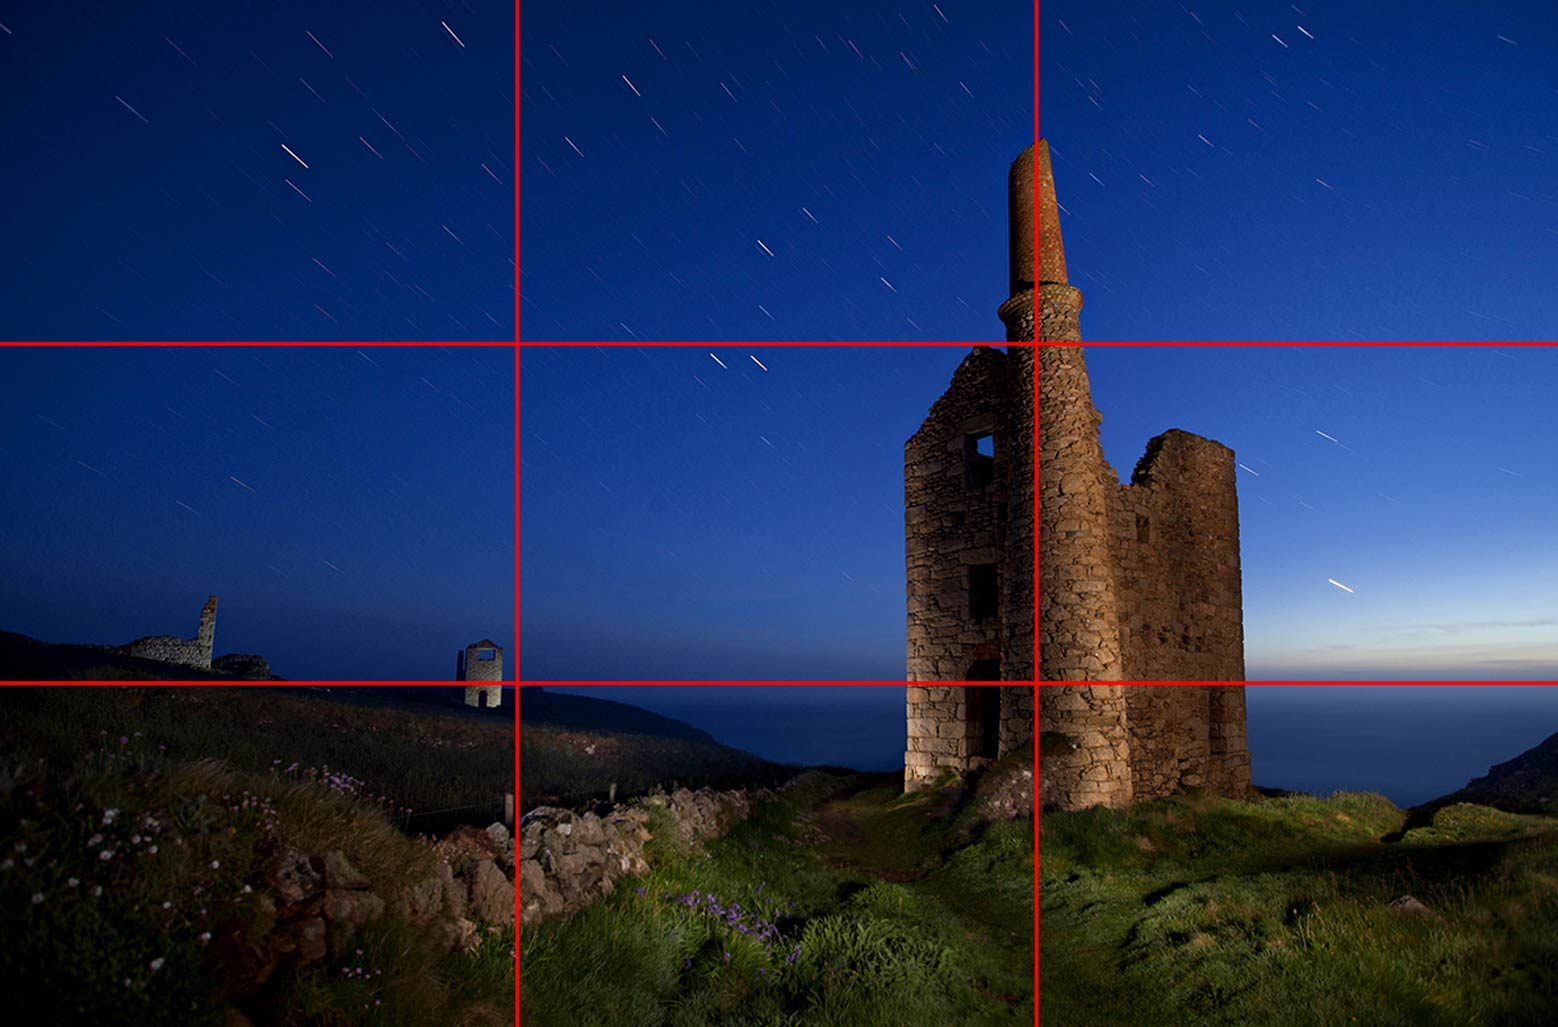 Rule of thirds example photograph